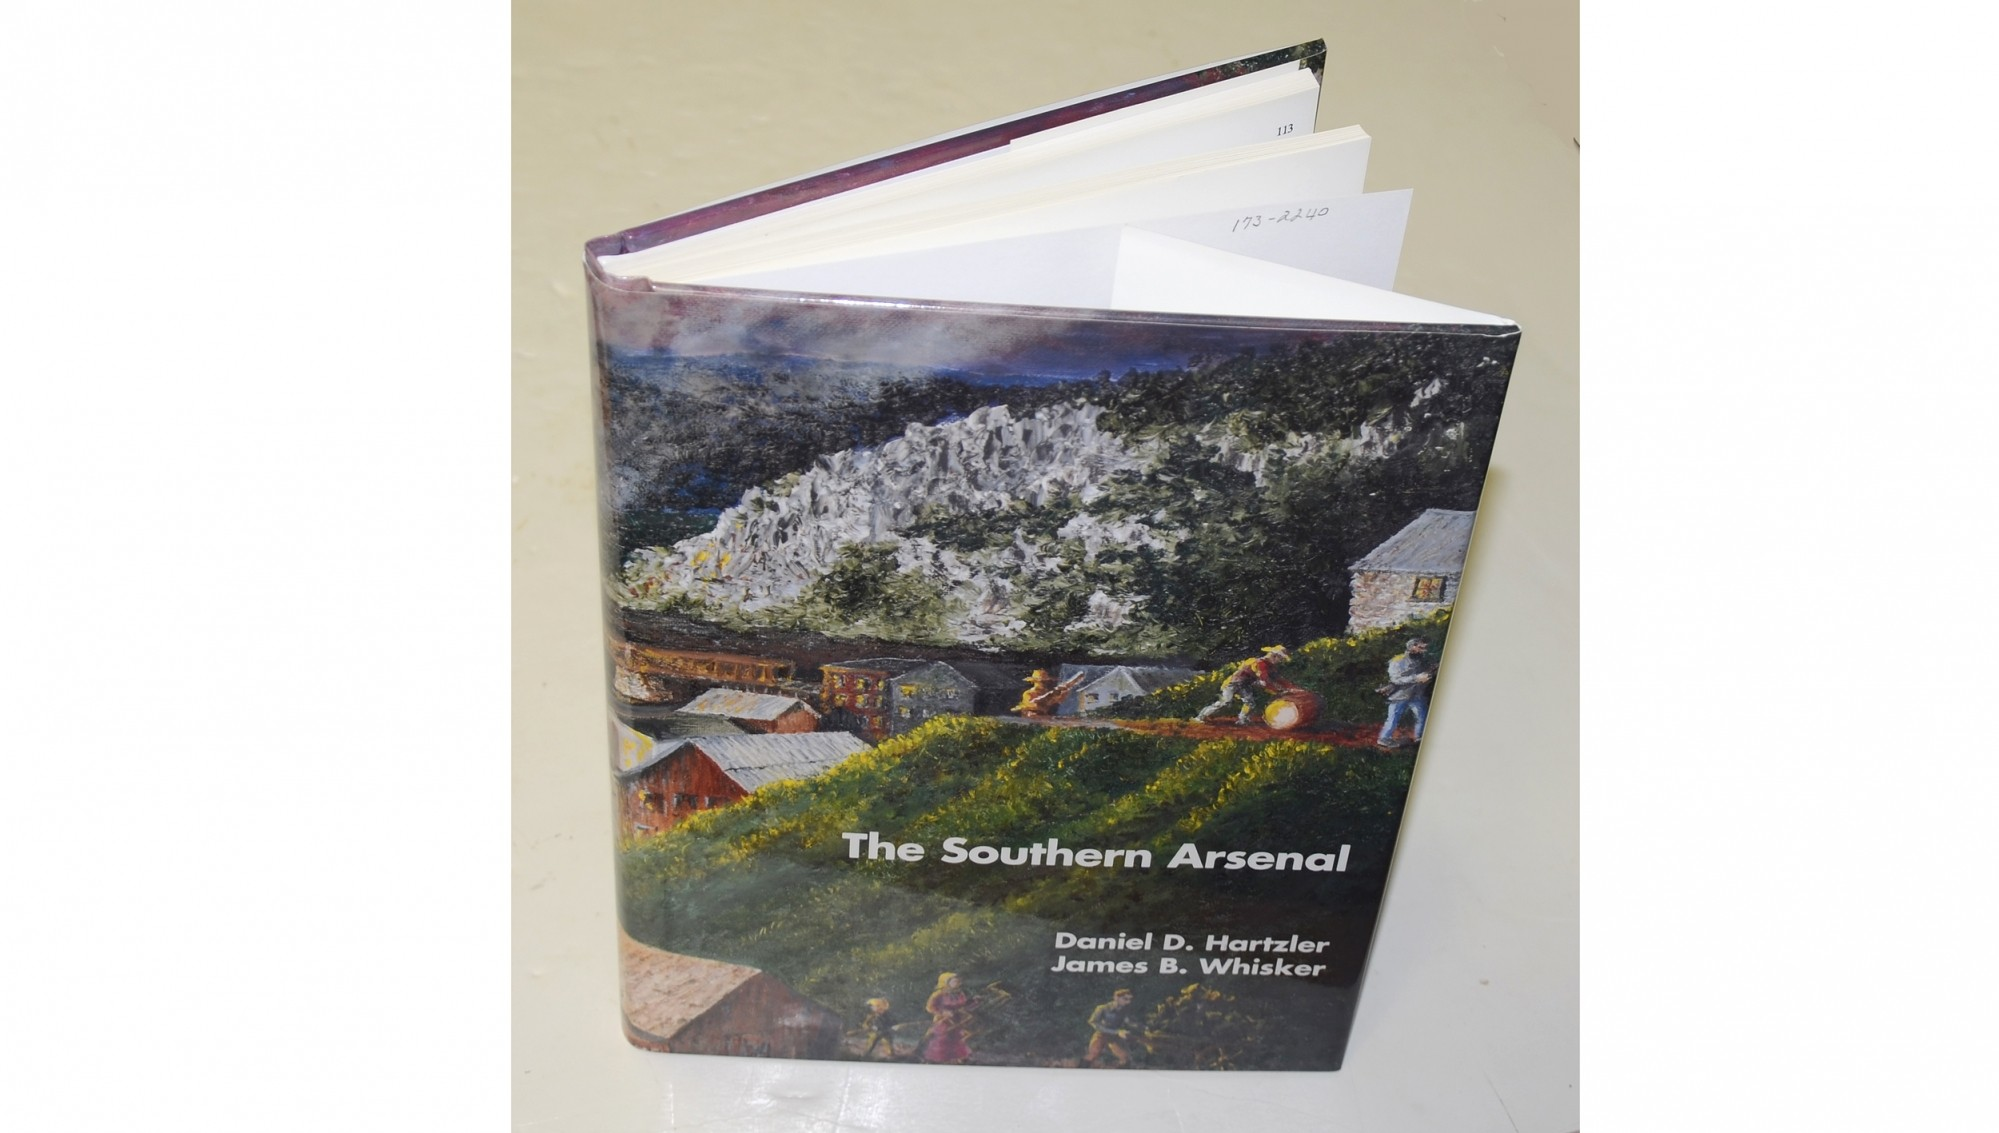 <I>THE SOUTHERN ARSENAL: A STUDY OF THE UNITED STATES ARSENAL AT HARPER'S FERRY</I> BY HARTZLER & WHISKER